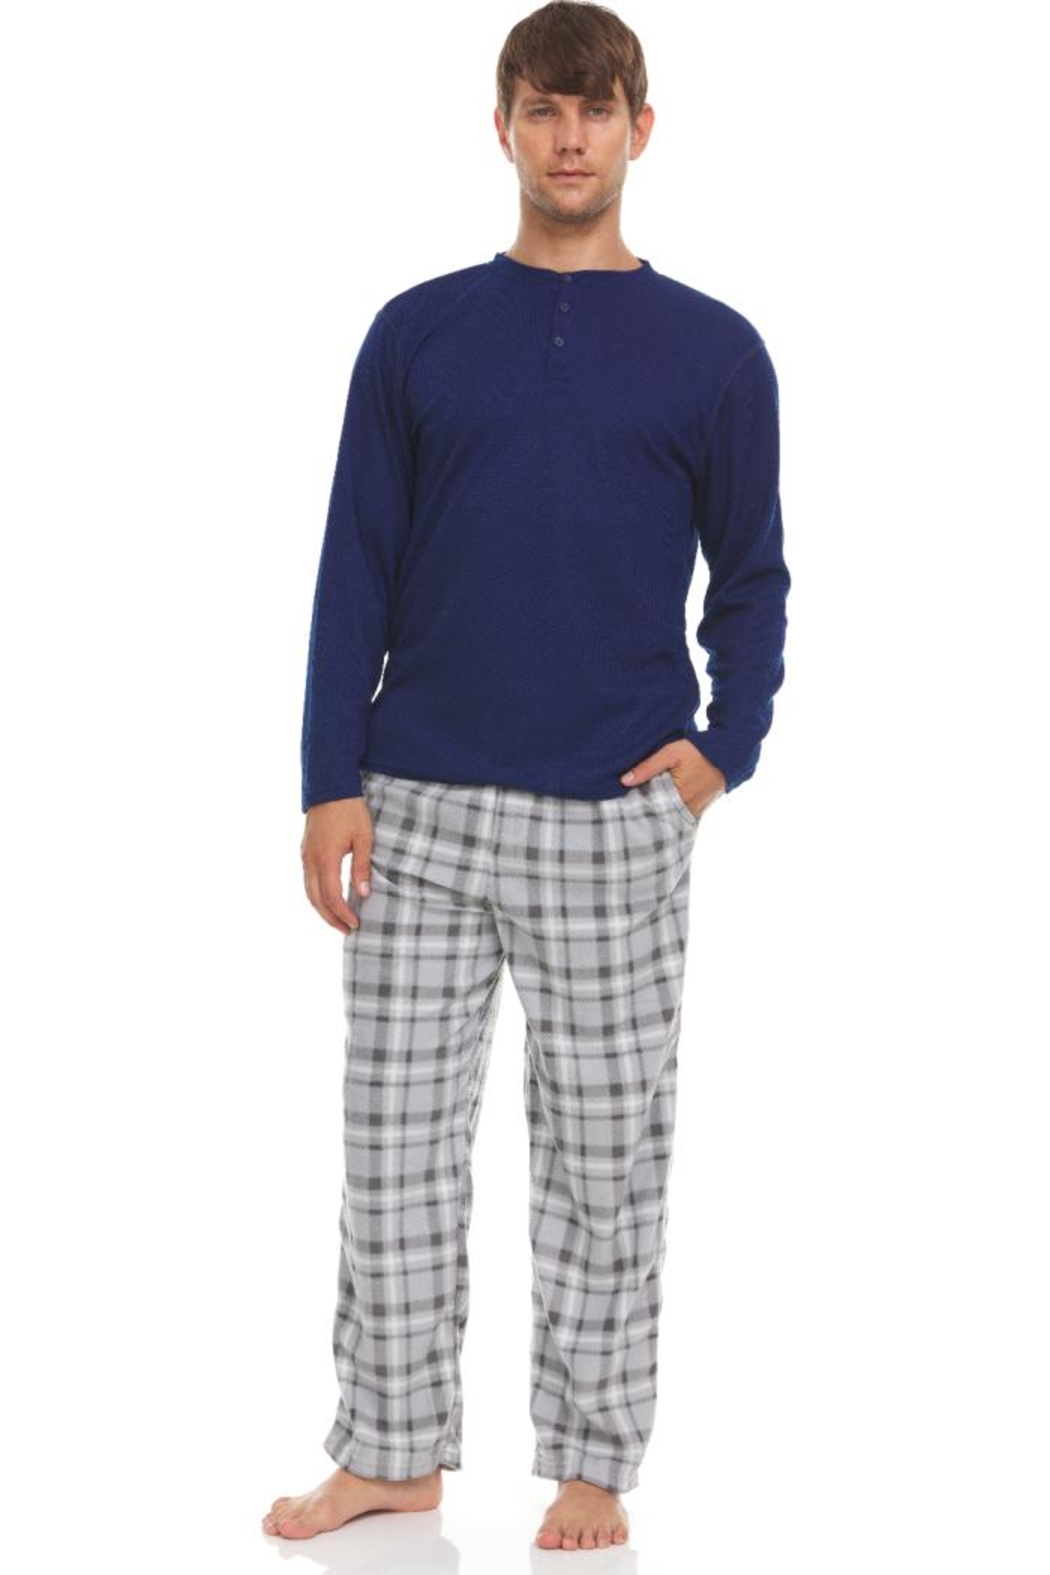 Greg Norman Thermal Top & Fleece Pant Lounge Set - Front Cropped Image